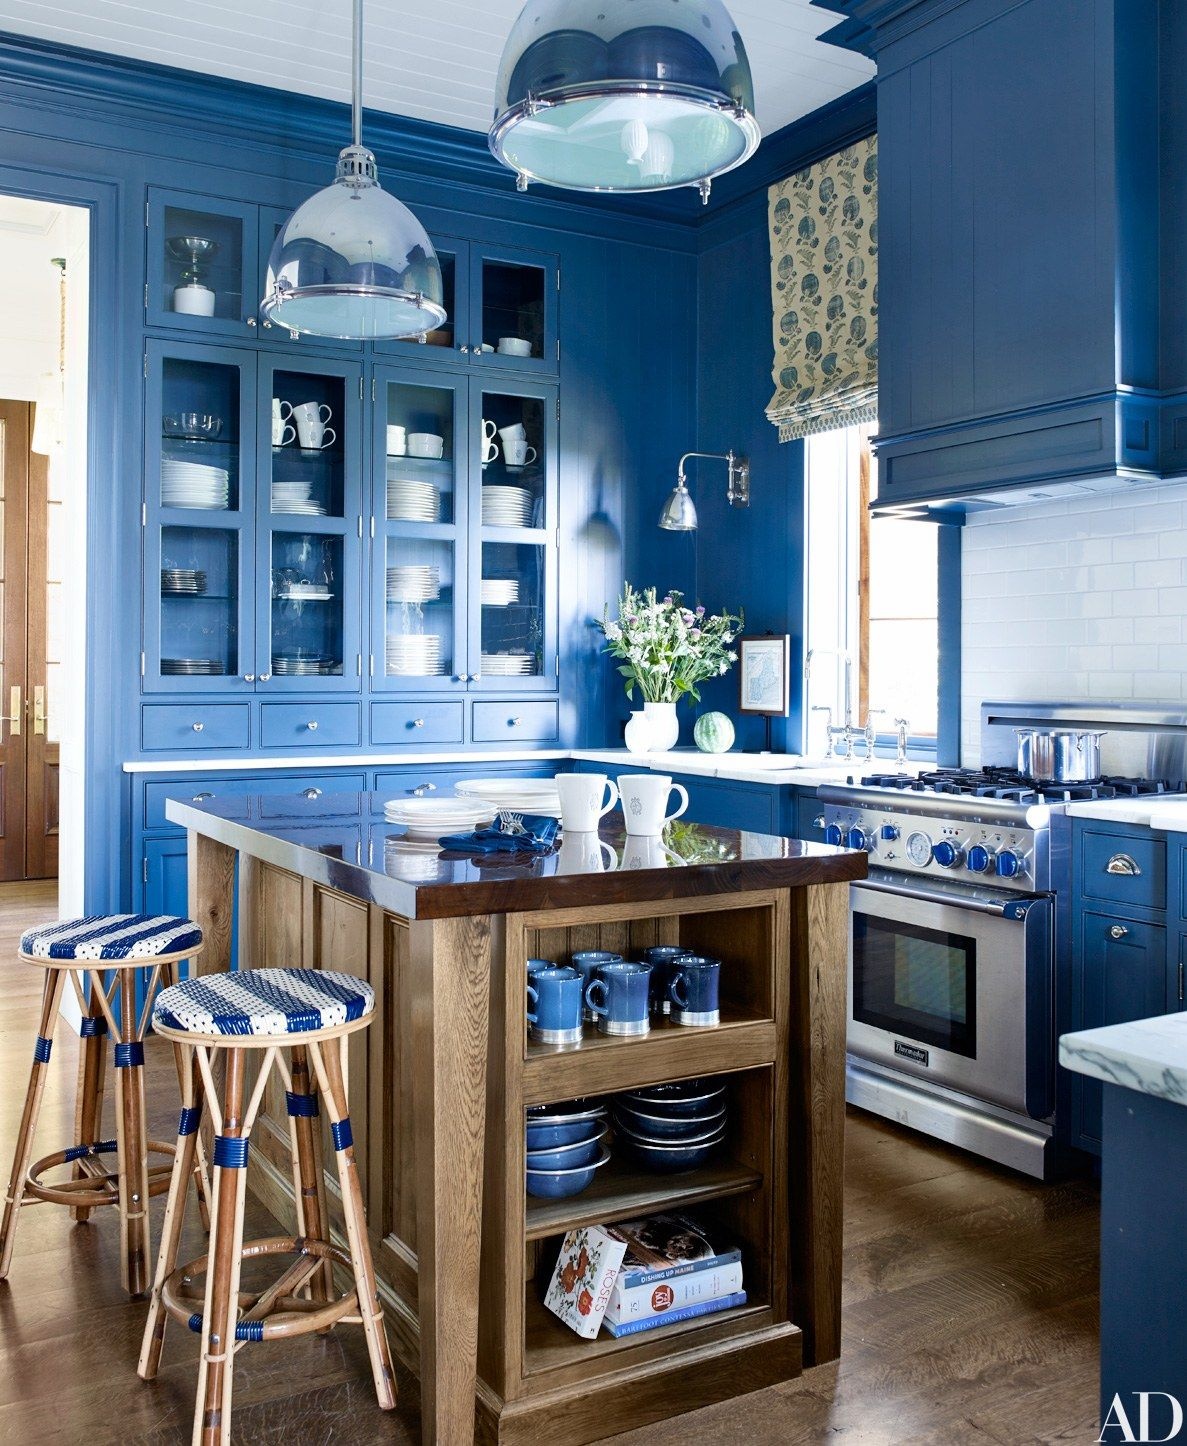 Suzanne Kasler And Les Cole Transform A Compound On The Coast Of Maine Colorful Kitchen Decor Kitchen Design Kitchen Colors